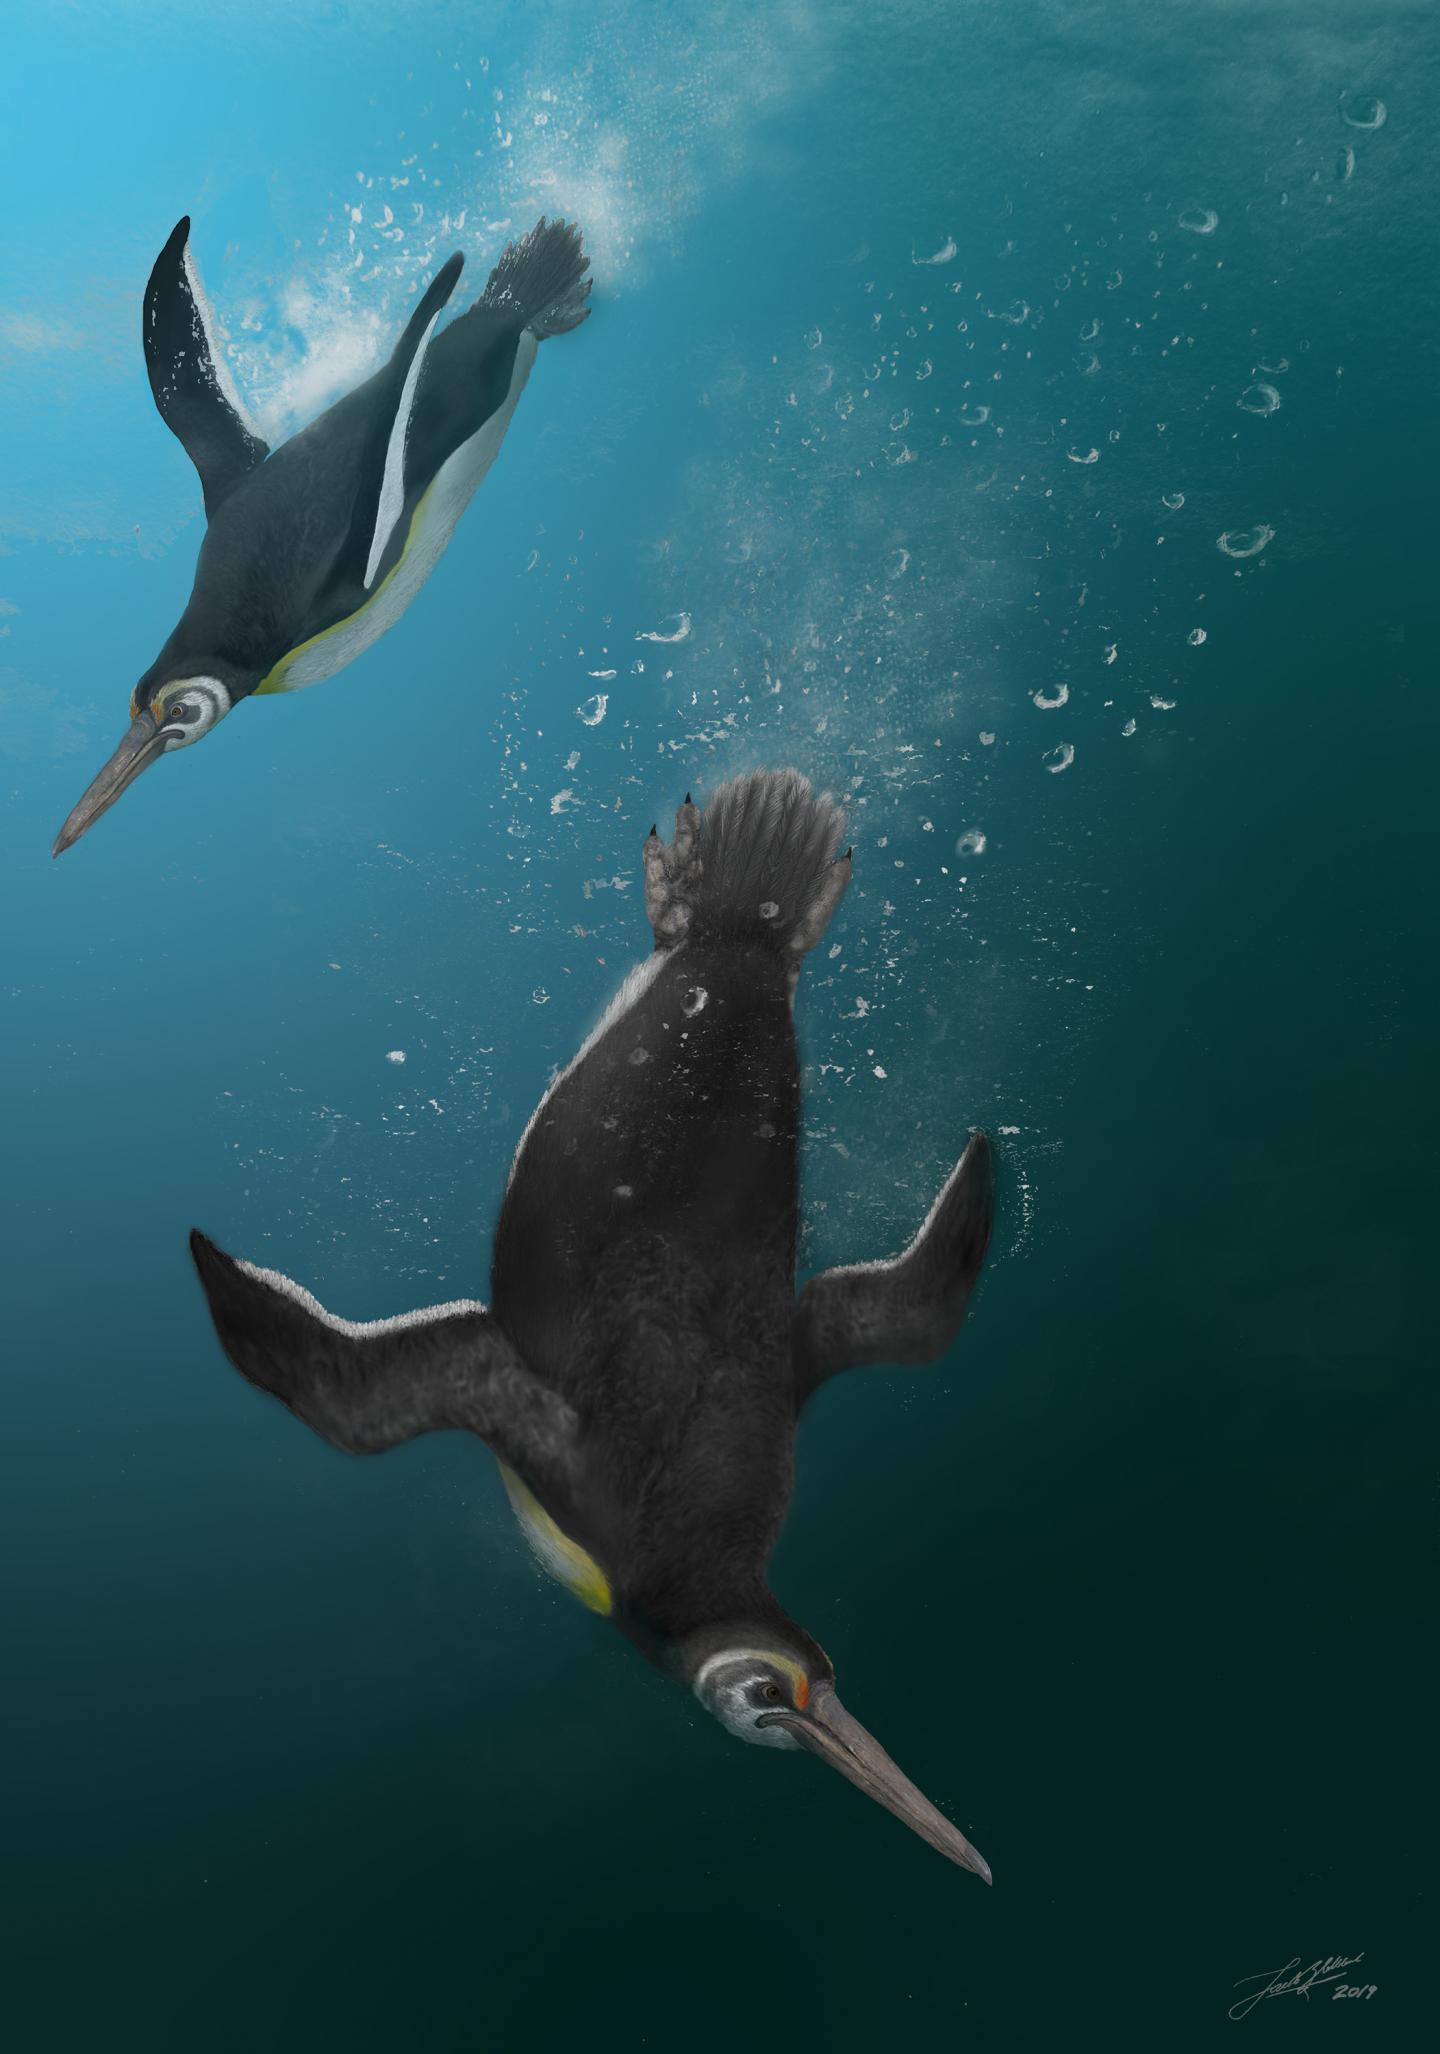 When Penguins Rules the Waves